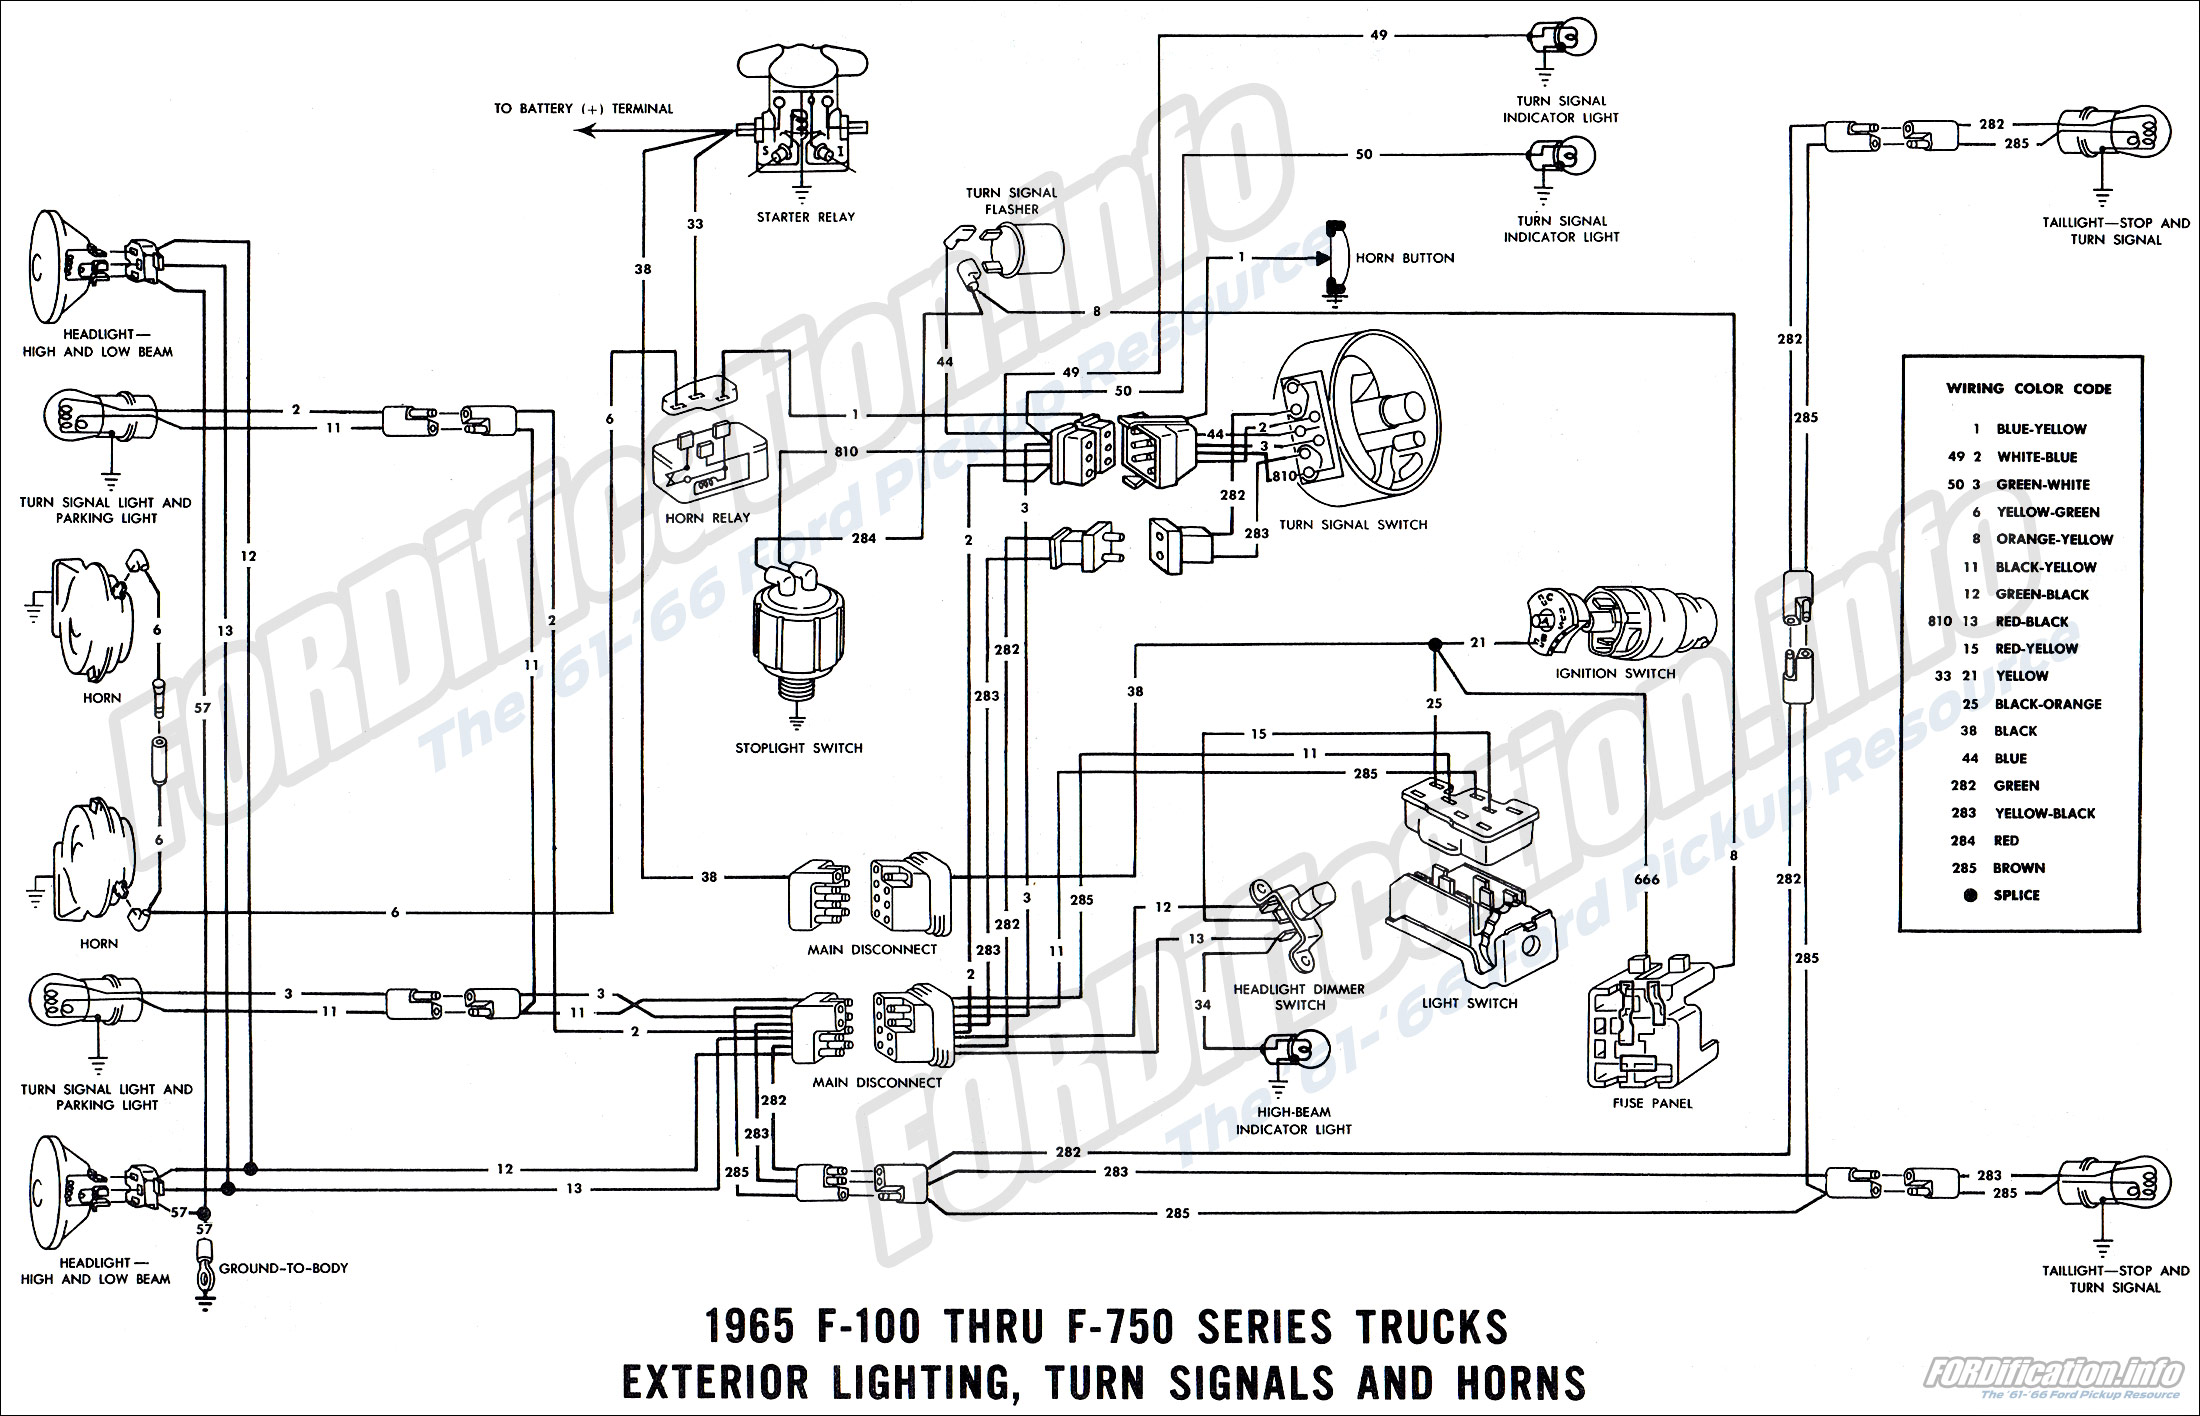 1965 ford truck wiring diagrams fordification info the 61 66 rh fordification info Ford F-150 Wire Schematics 1994 Ford F-150 Wiring Diagram